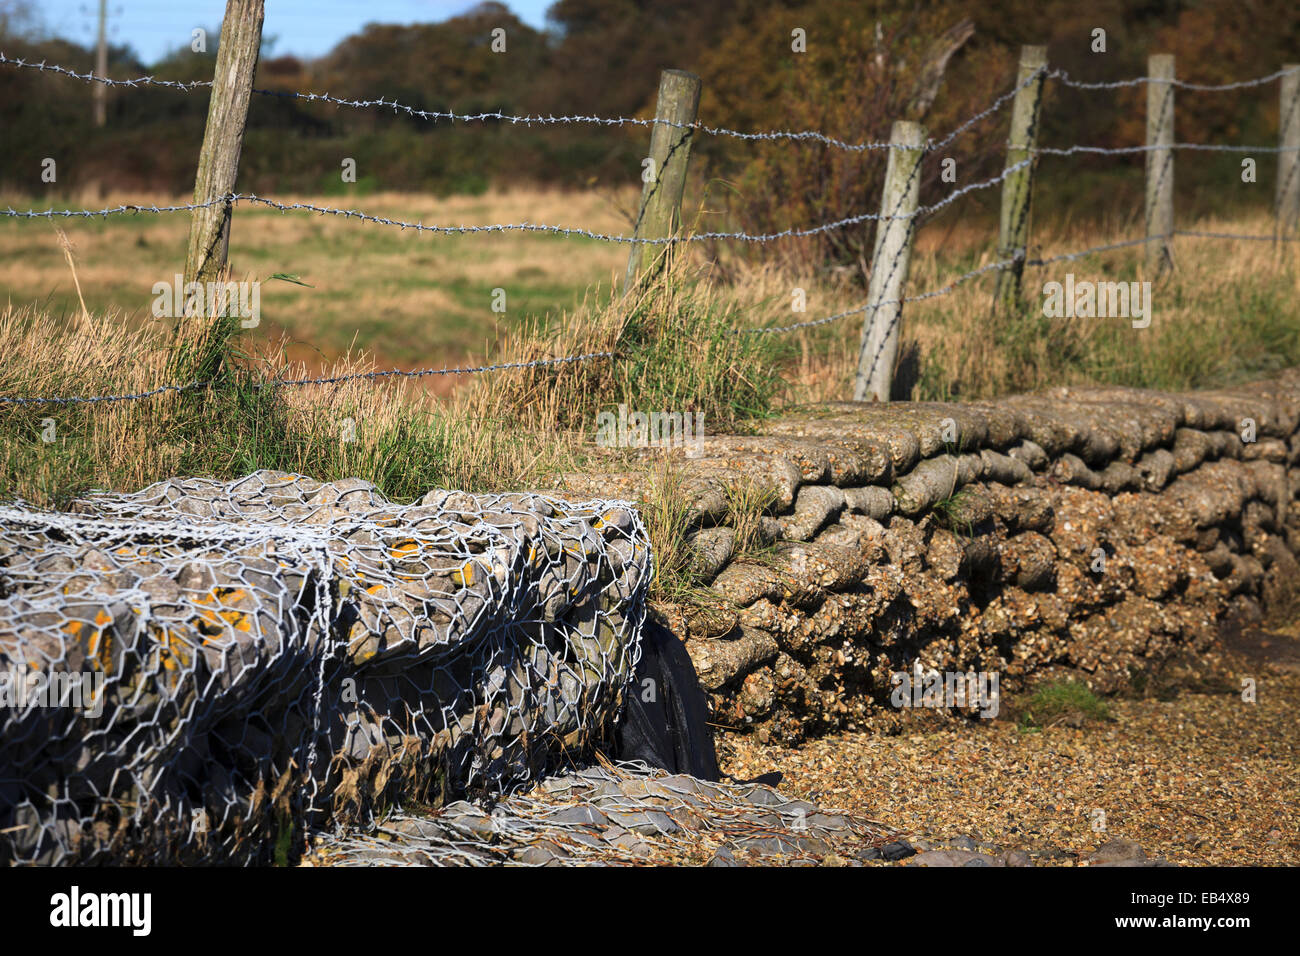 Wired stone and cement bag soil reinforcement on edge of field Stock Photo